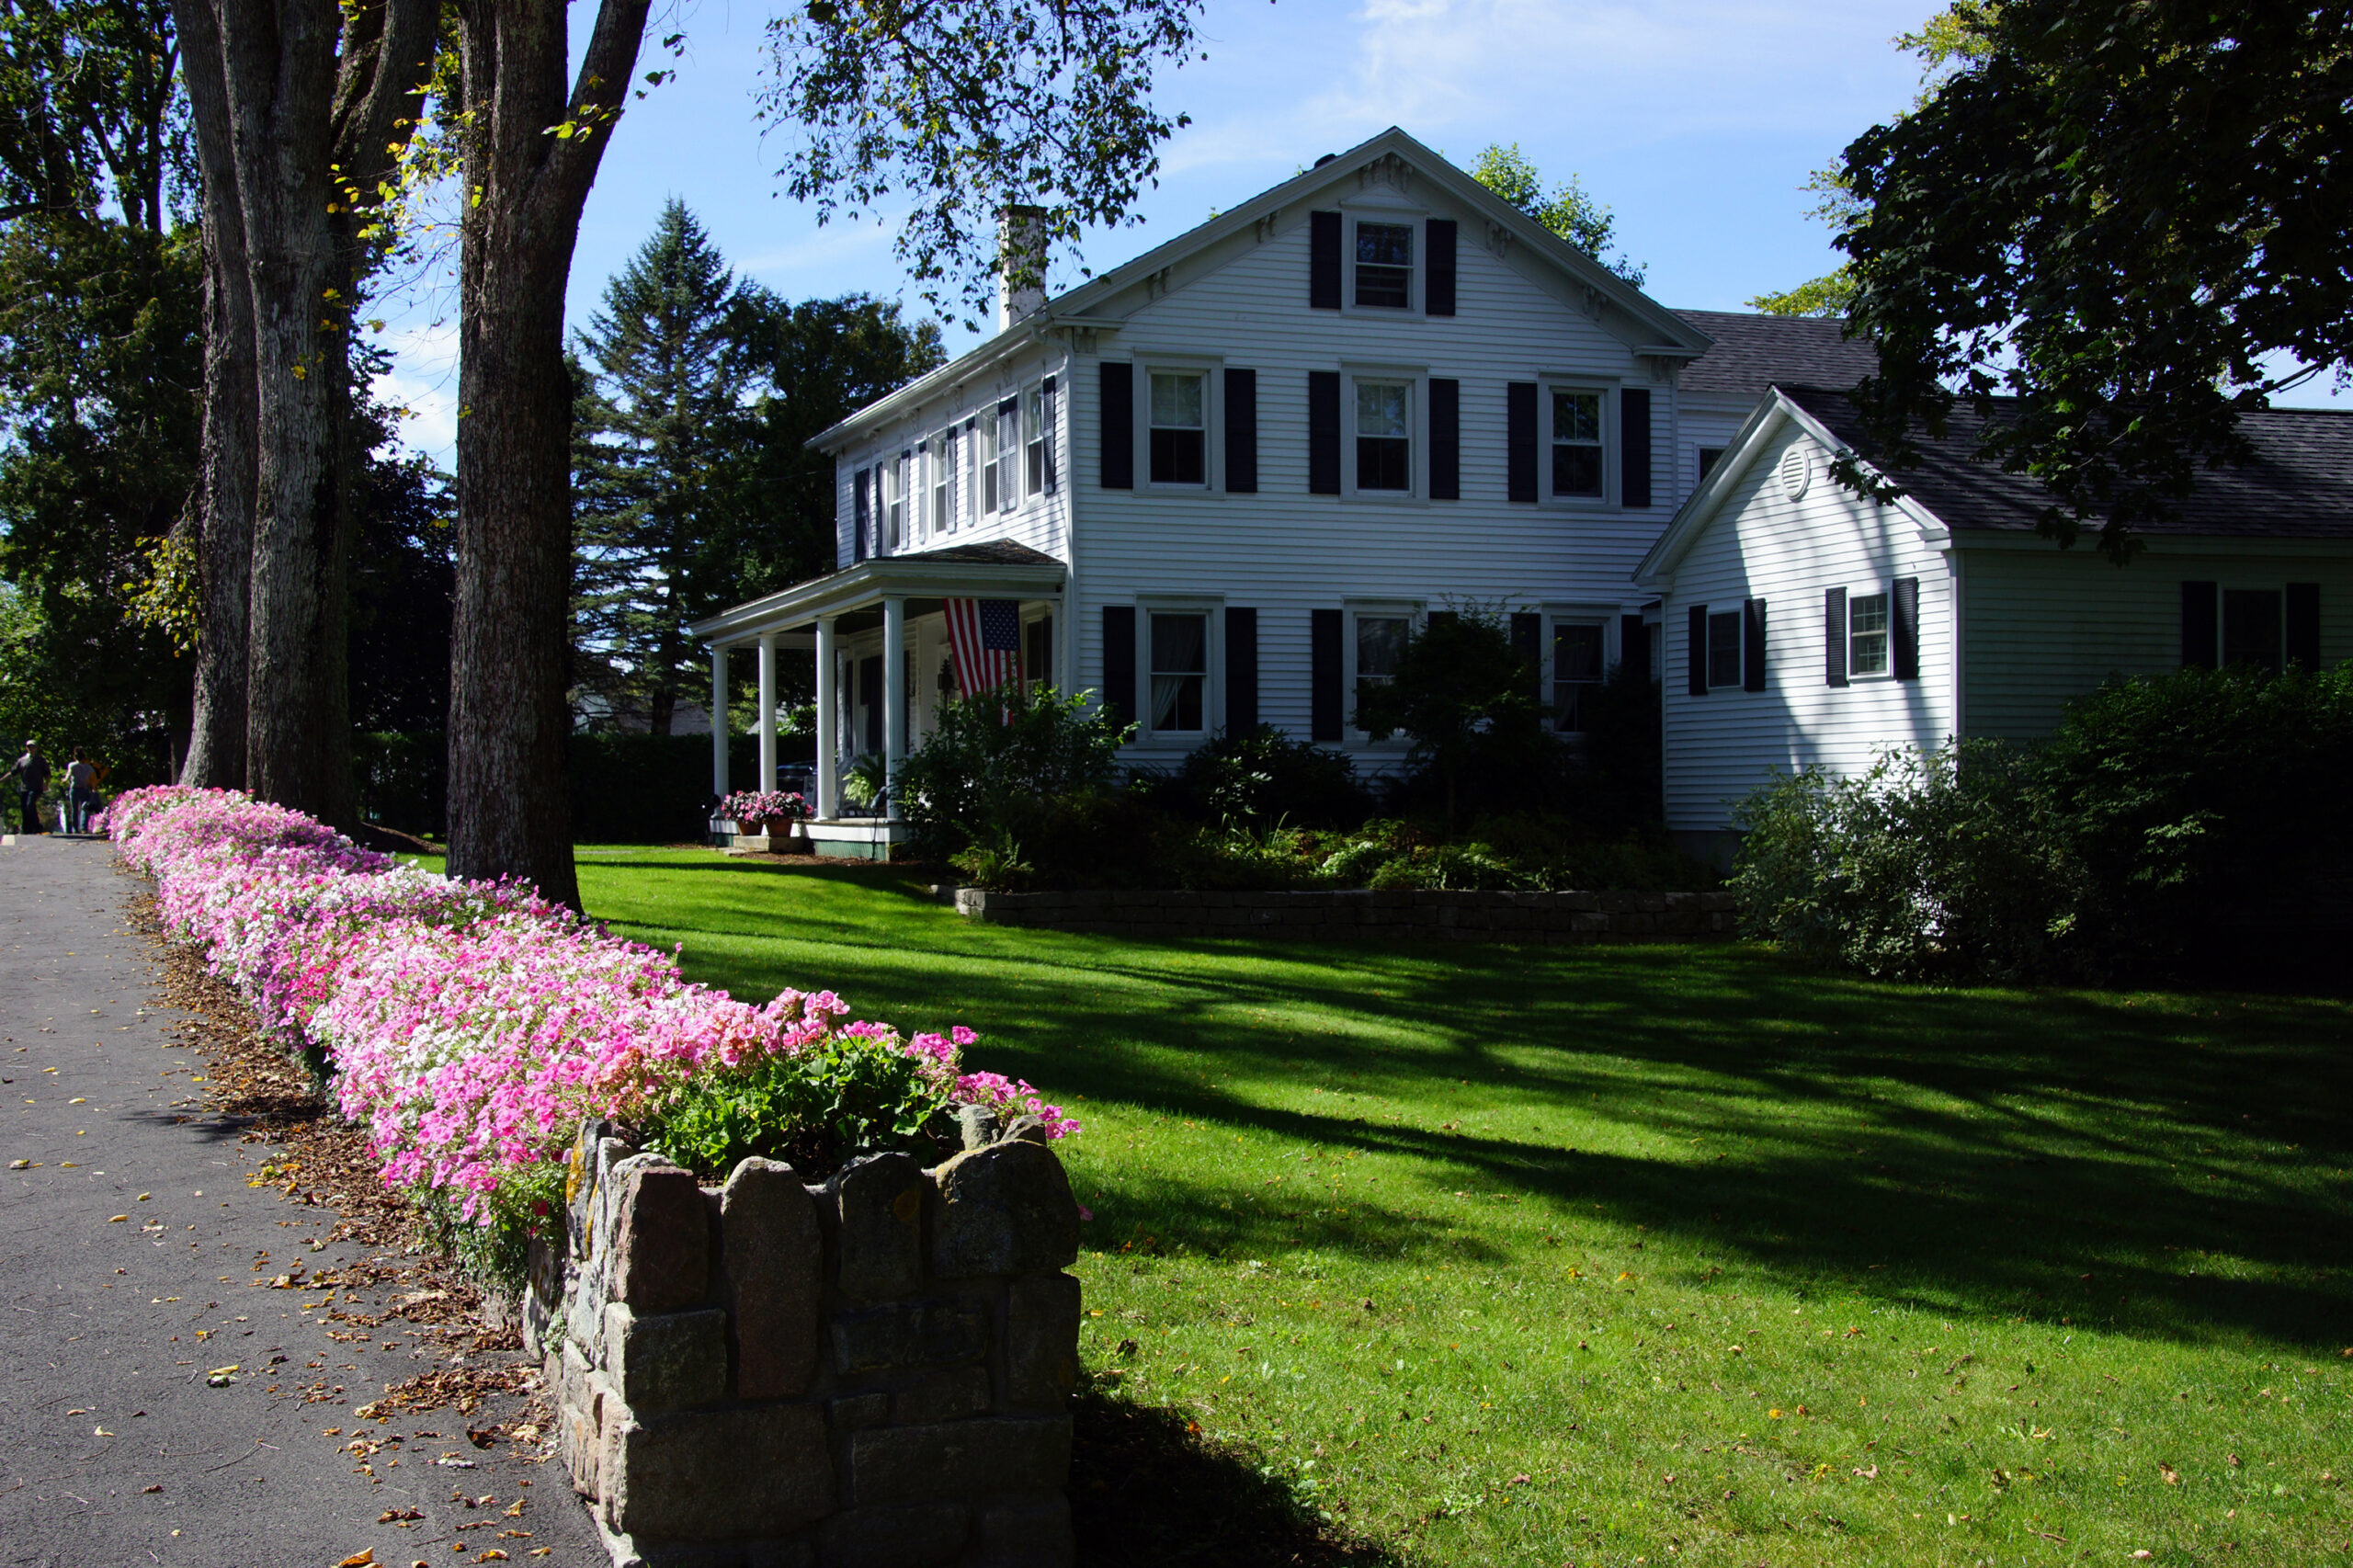 Colorful flowers and classic New England home